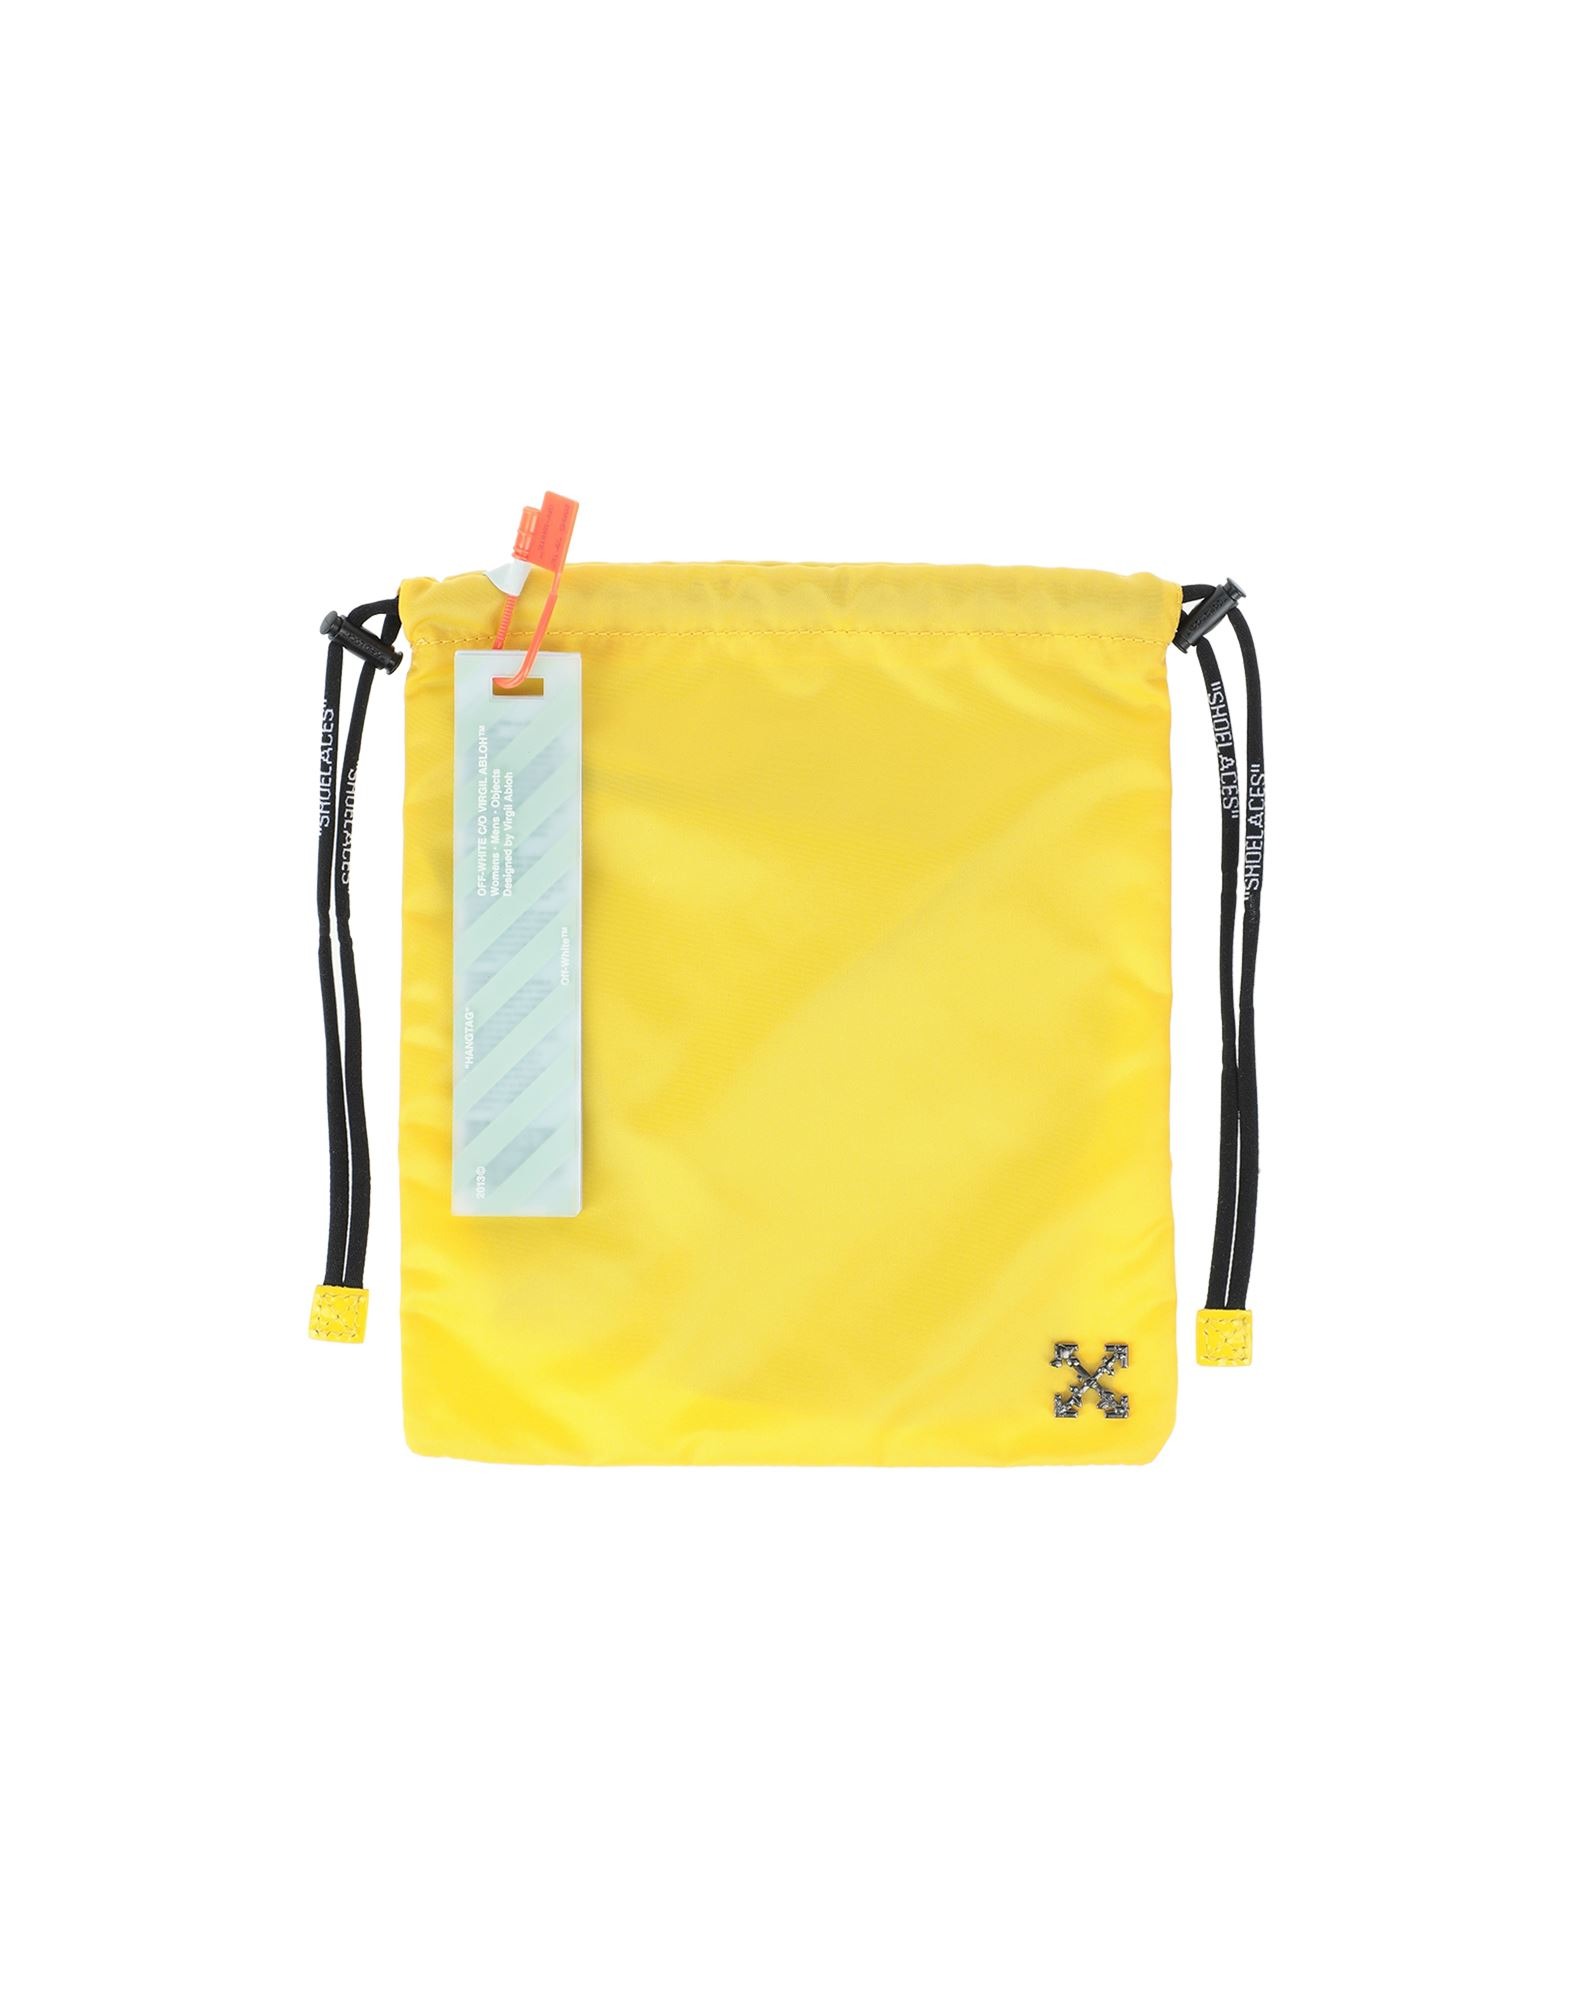 OFF-WHITE™ Косметичка off white™ шарф